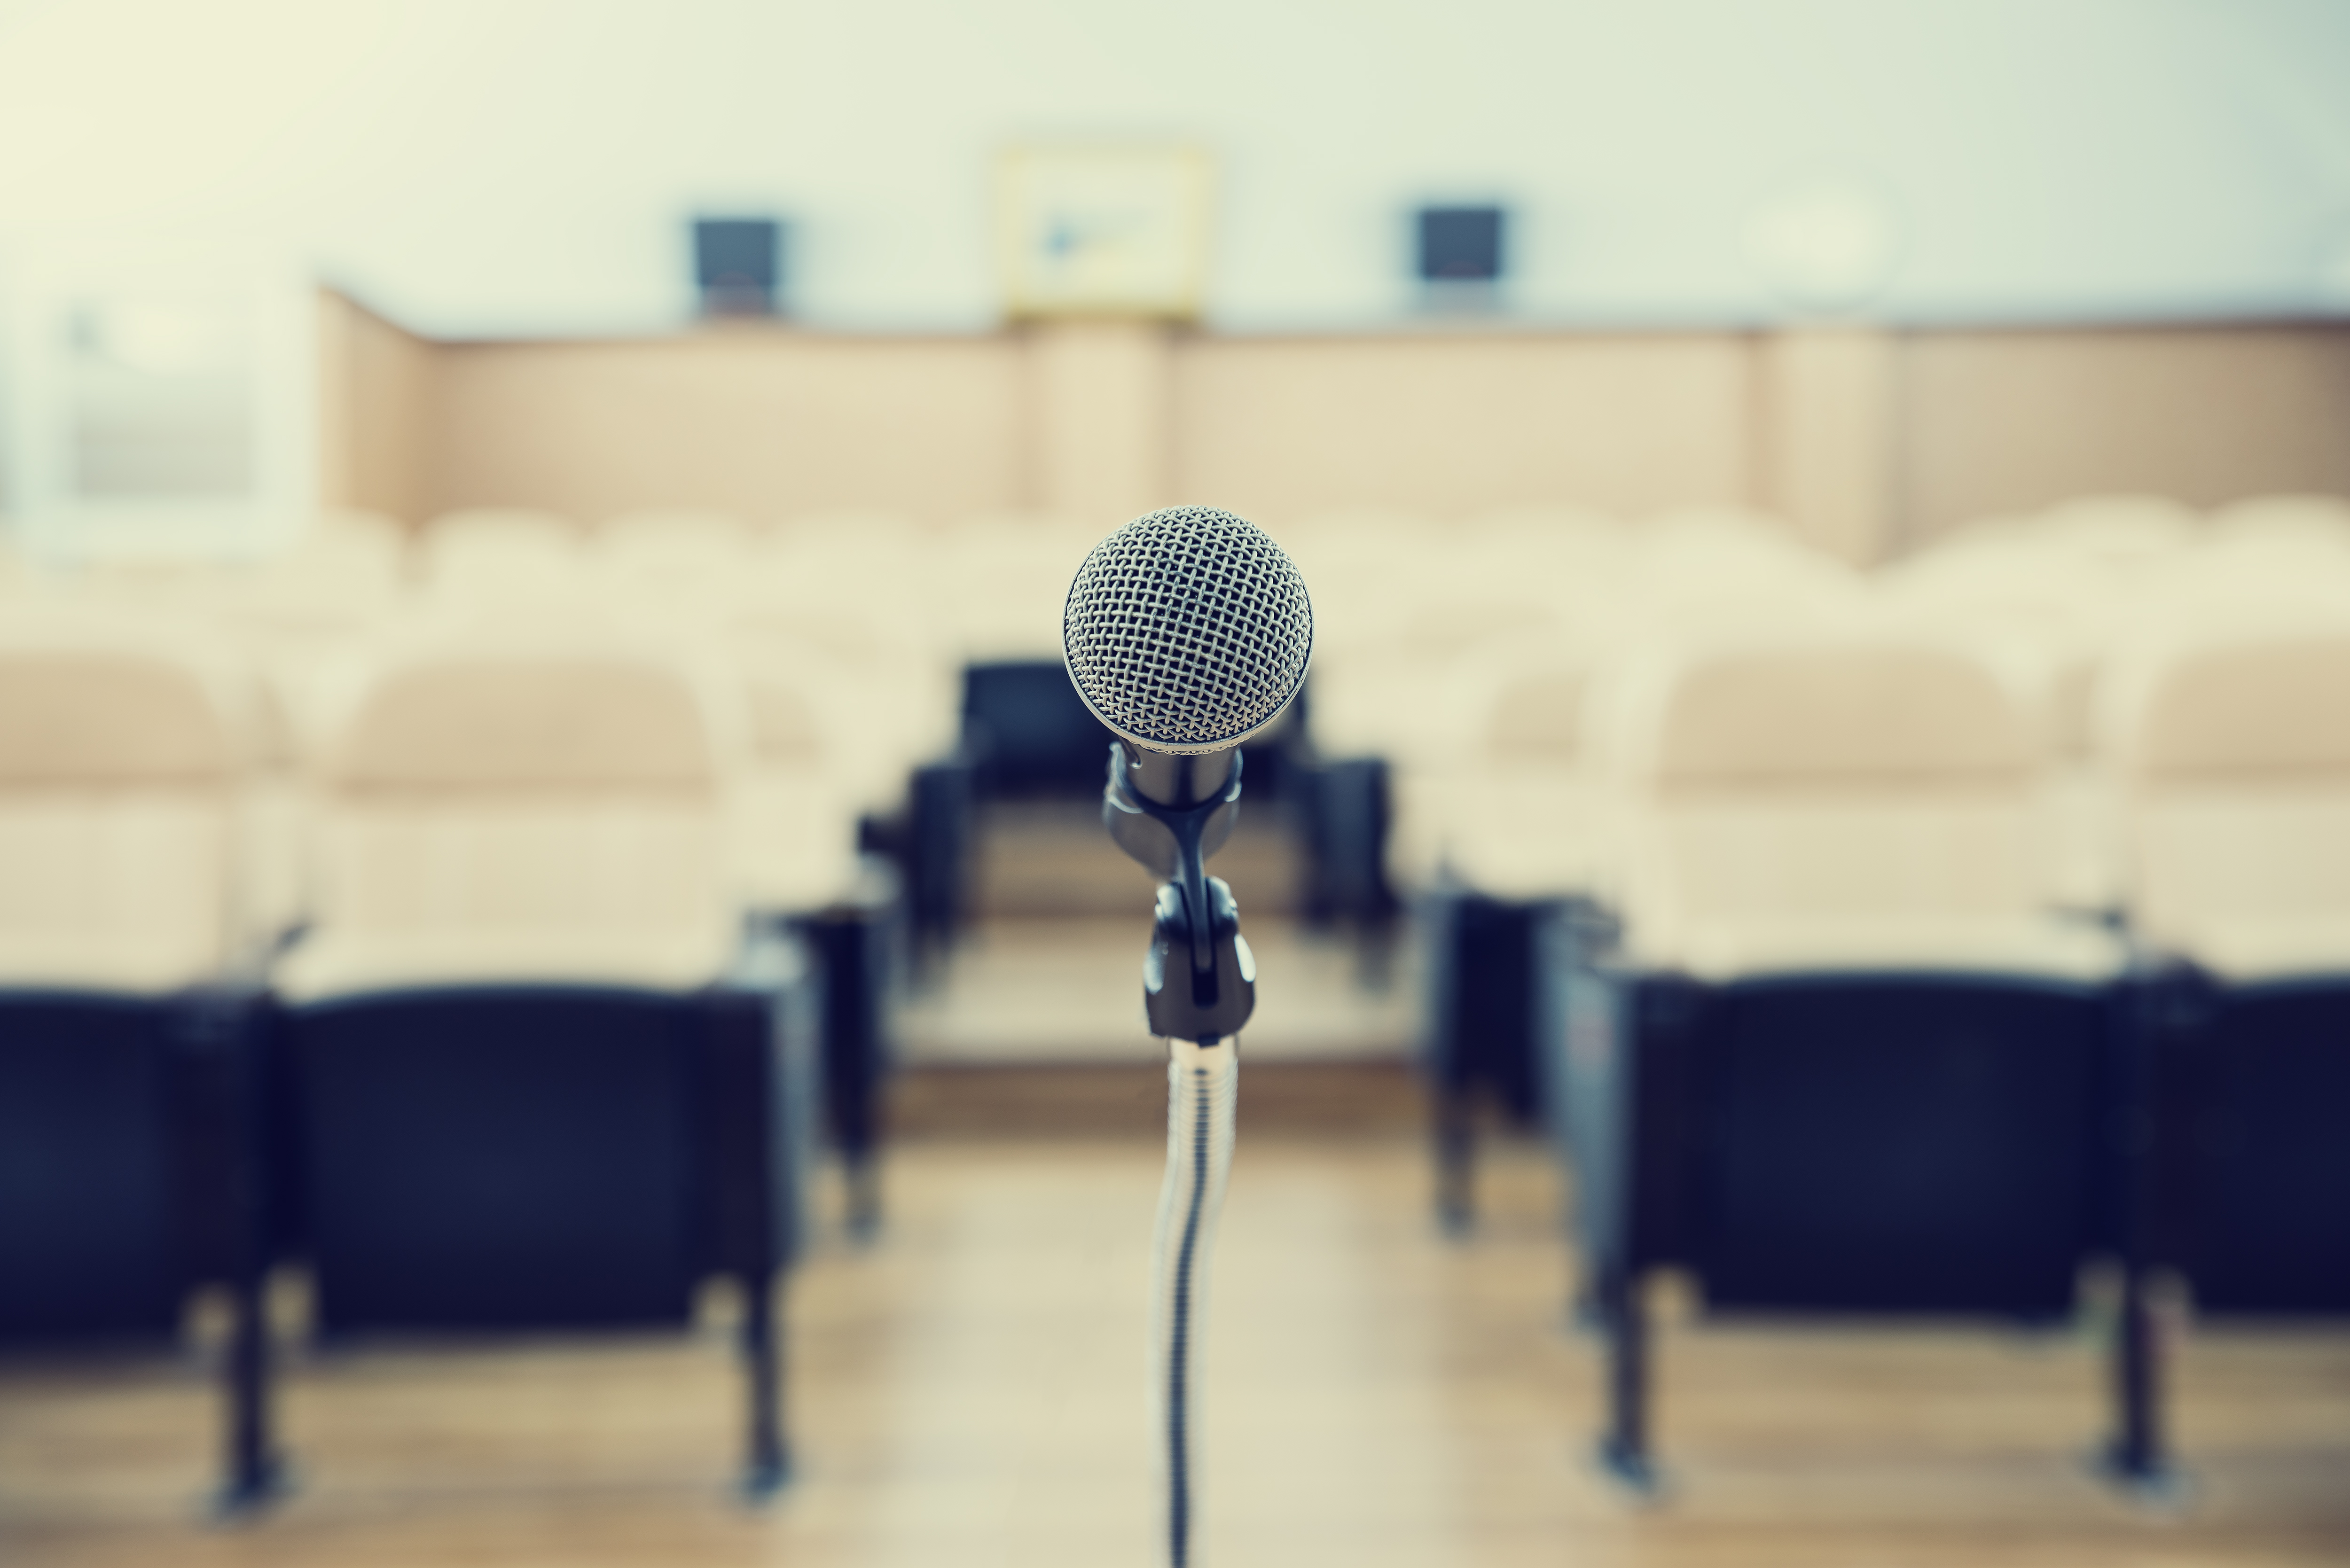 before a conference, the microphones in front of empty chairs.